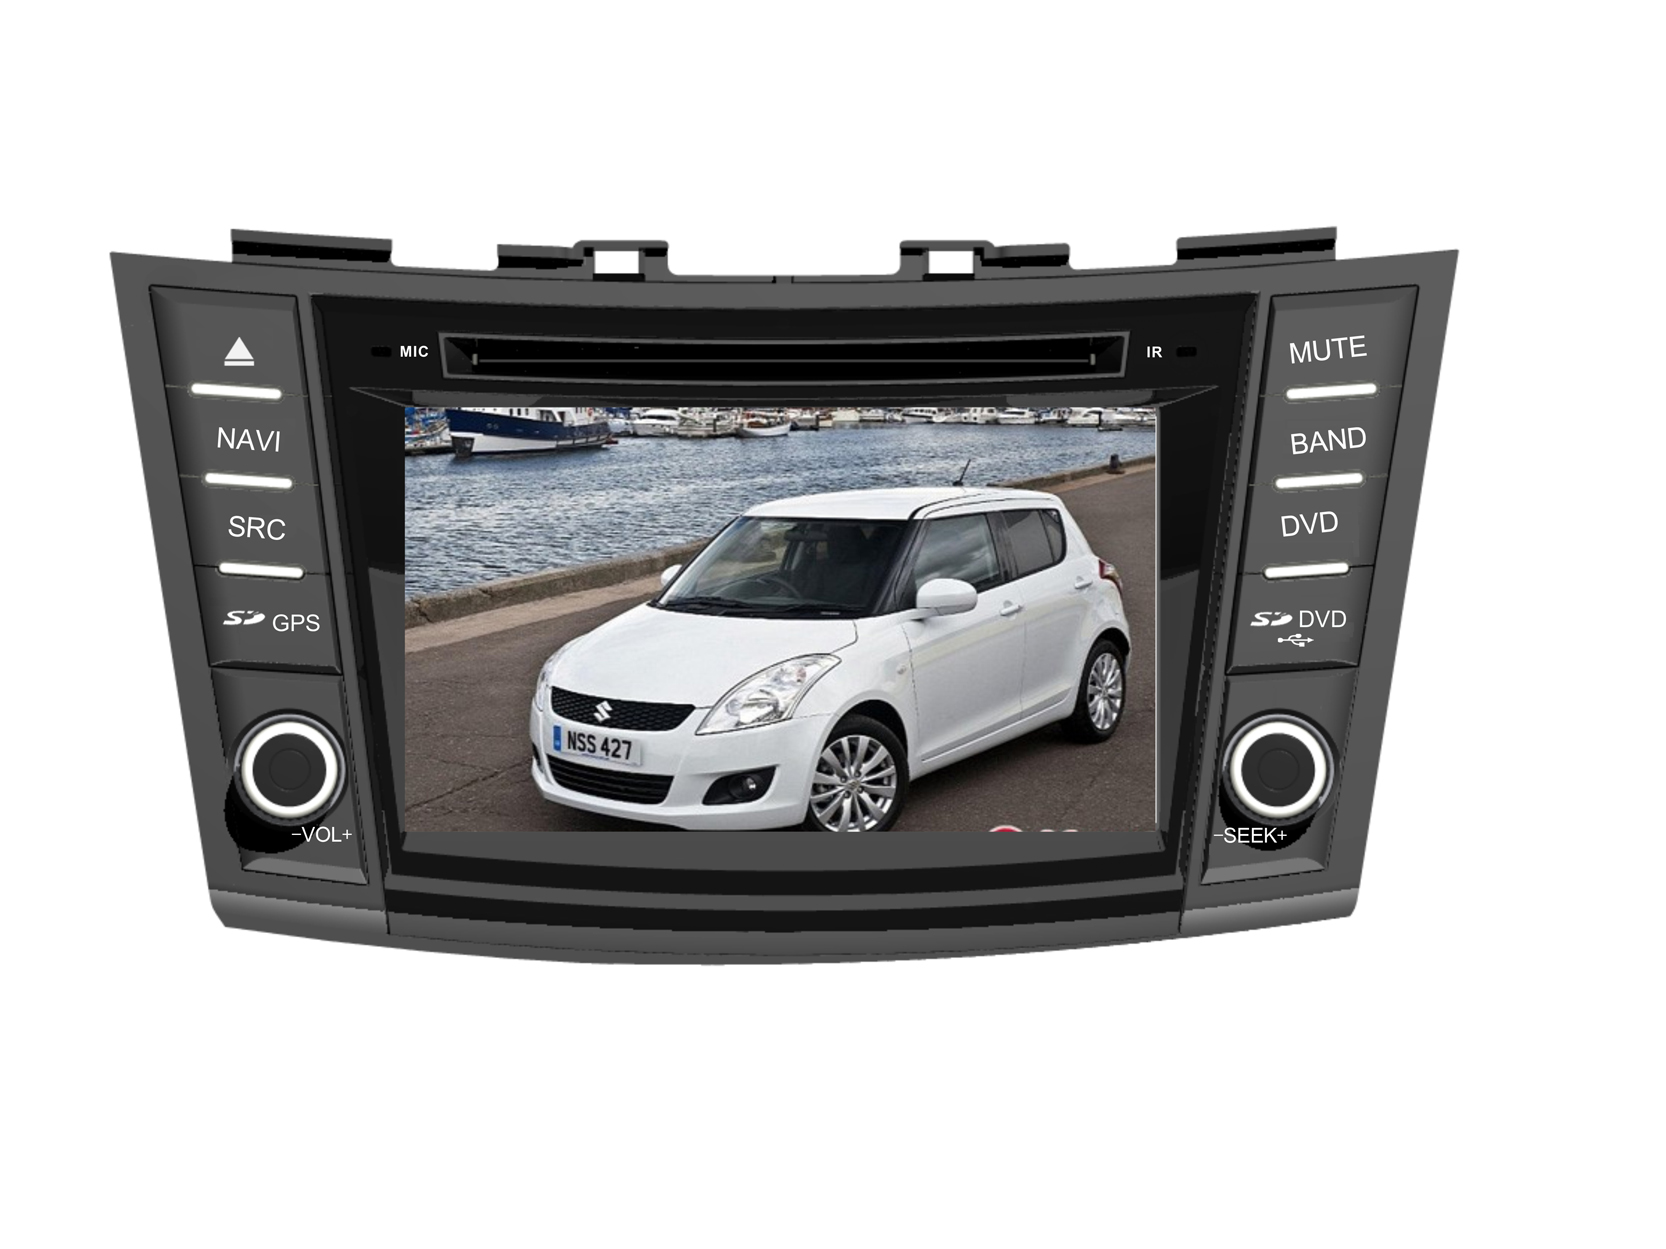 Station Multimédia Mobile 8 pouces Autoradio HD GPS DIVX DVD MP3 USB SD Bluetooth PIP disque dur 2 Go avec CAN BUS pour Suzuki Swift